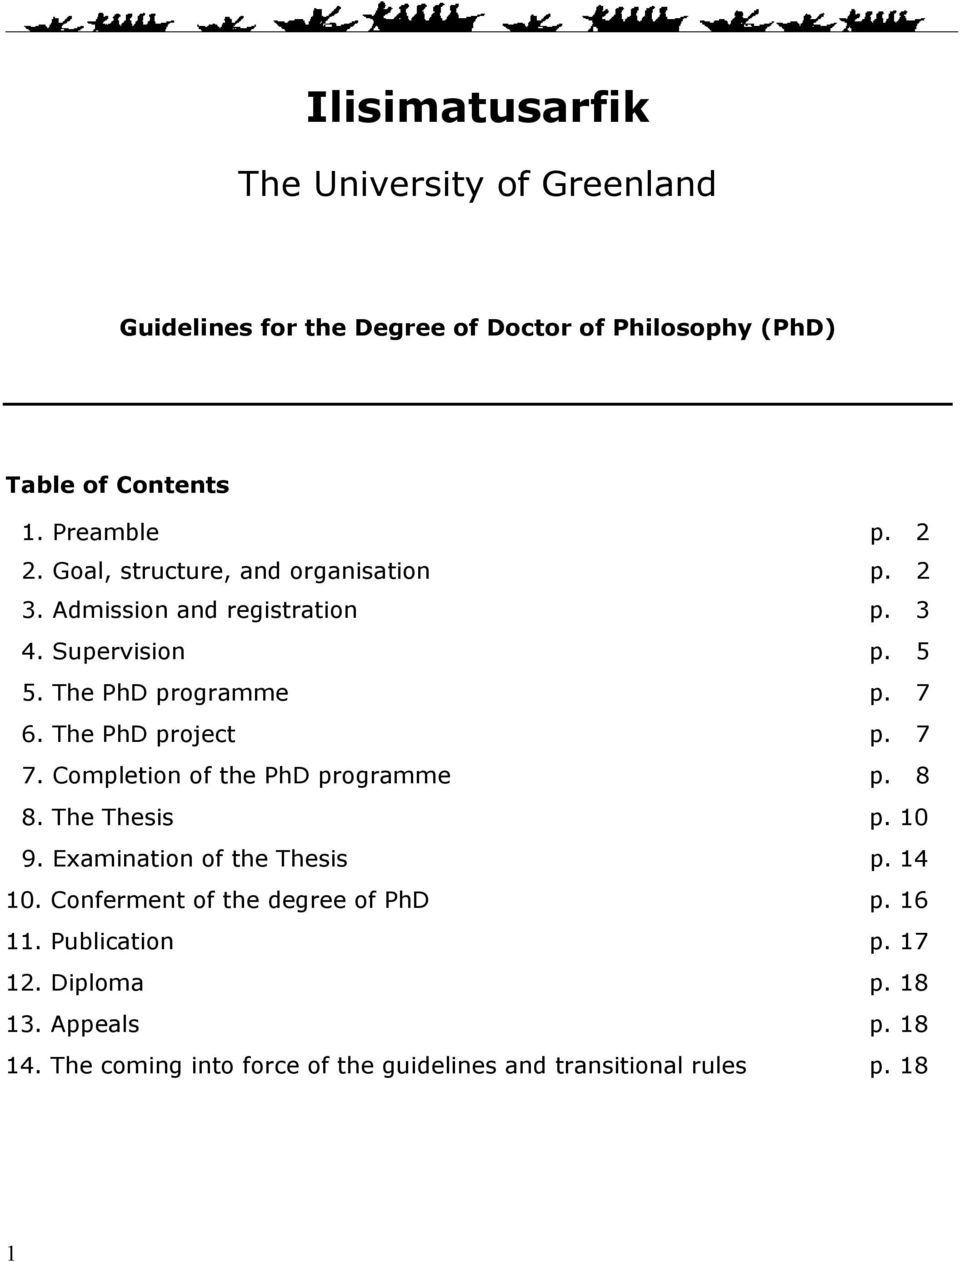 The PhD project p. 7 7. Completion of the PhD programme p. 8 8. The Thesis p. 10 9. Examination of the Thesis p. 14 10.